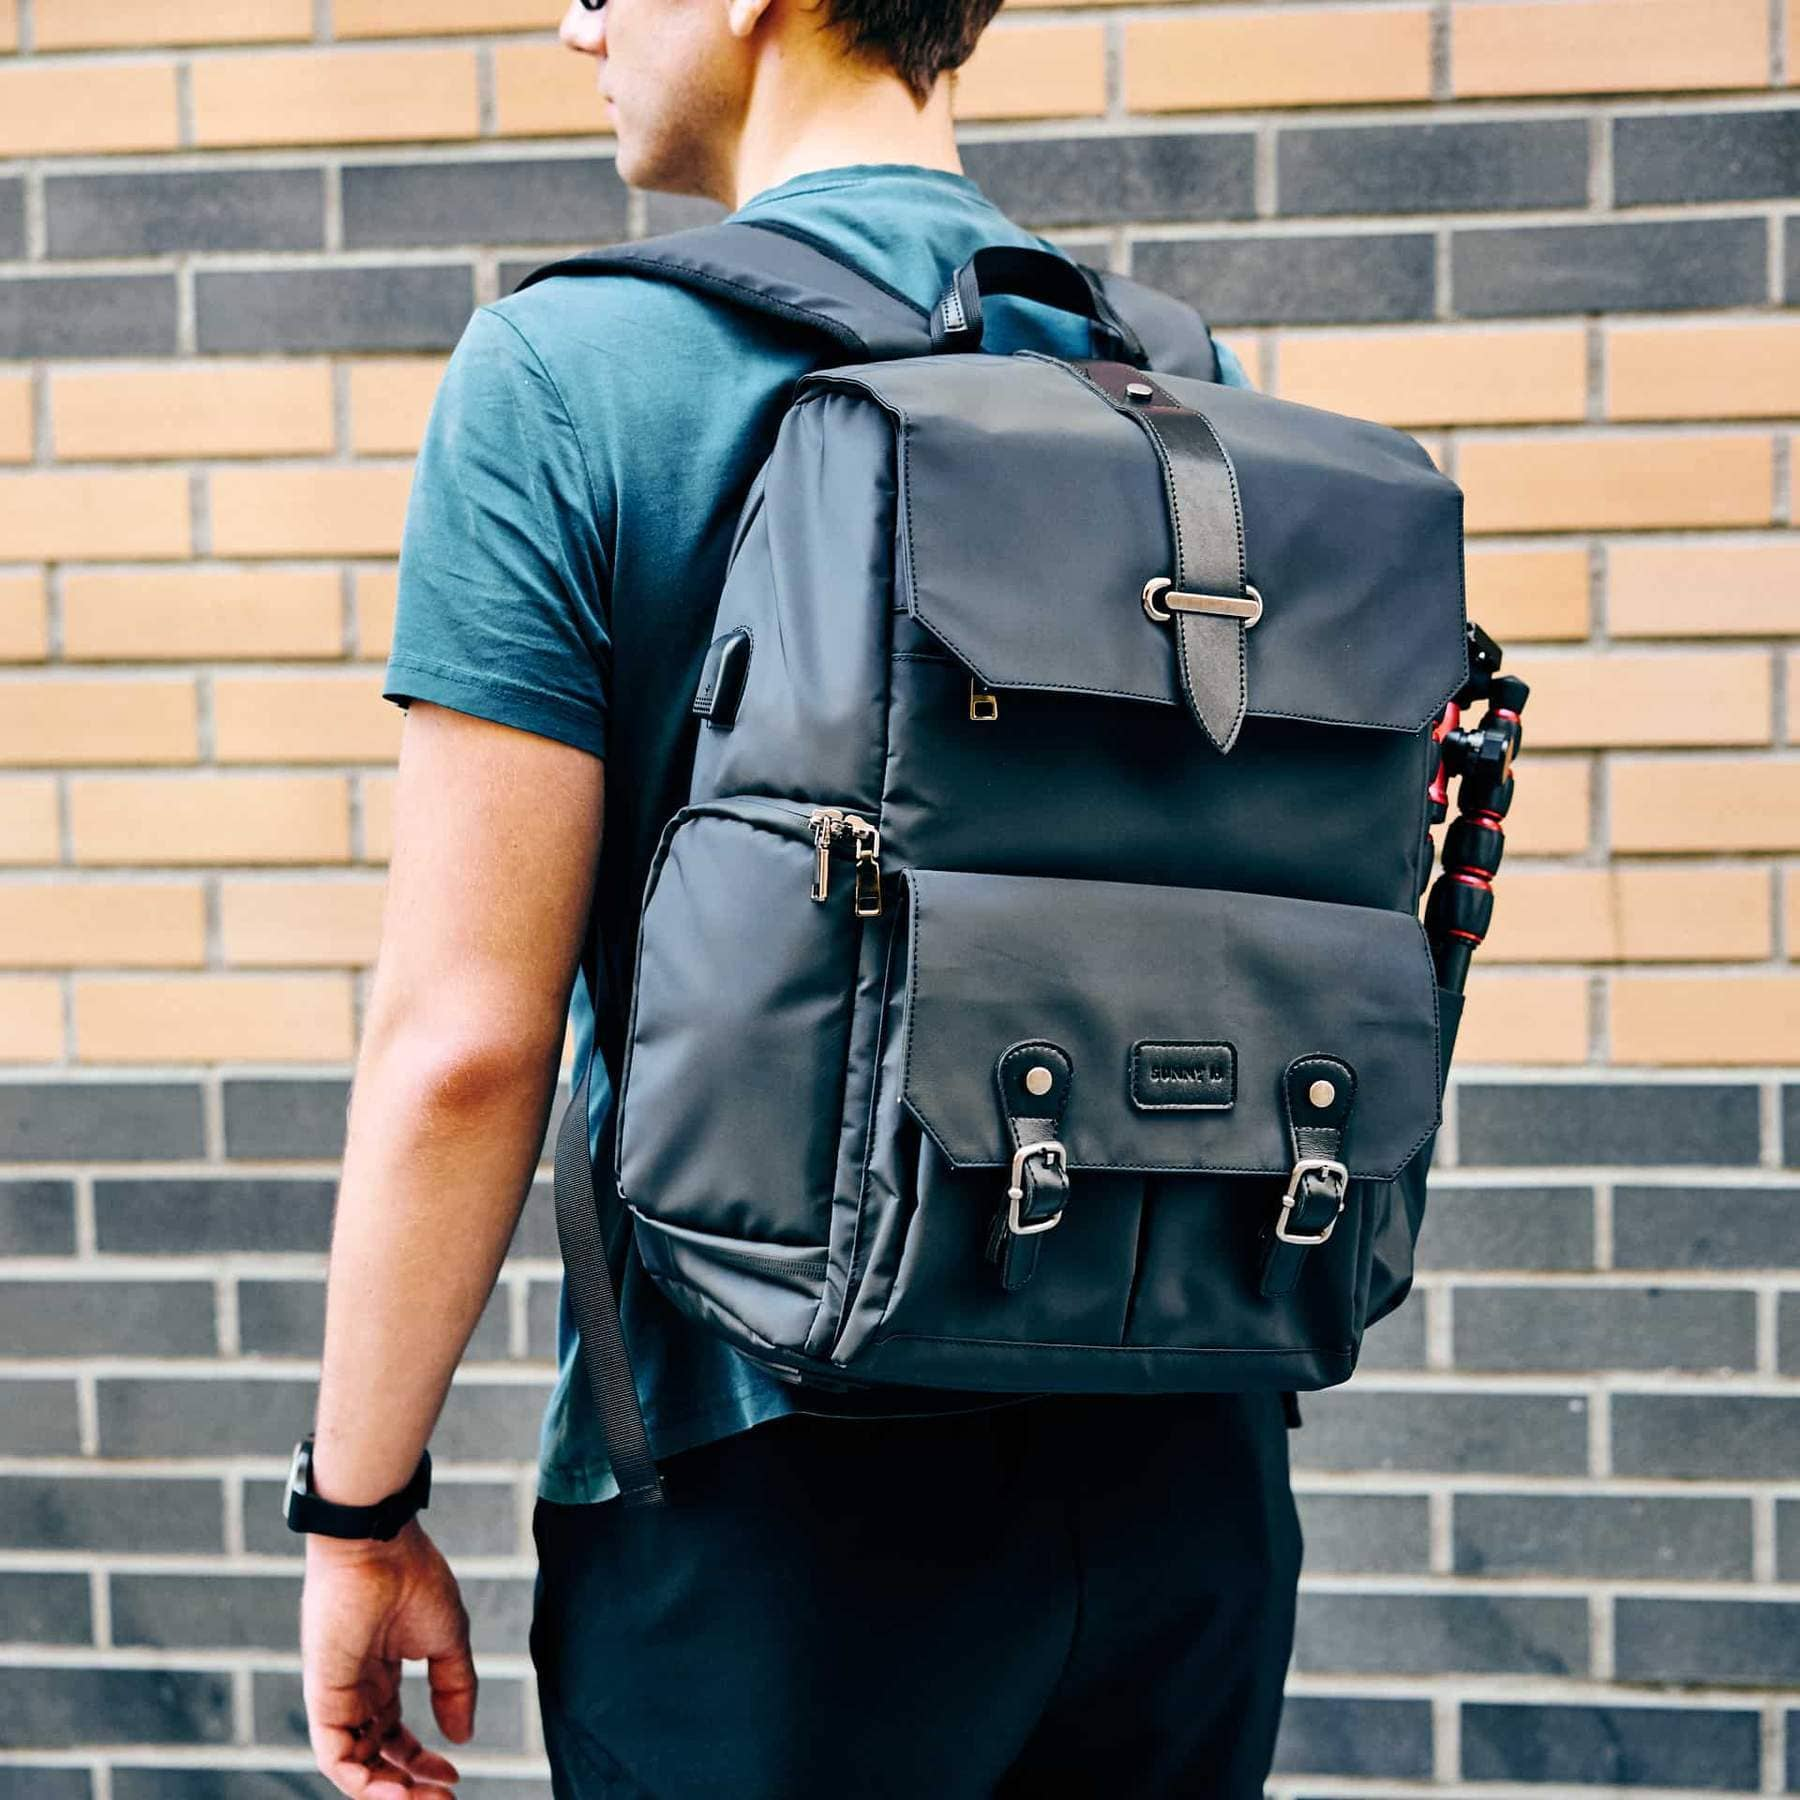 What is Commercial Photography Definition - Voyager Camera Backpack